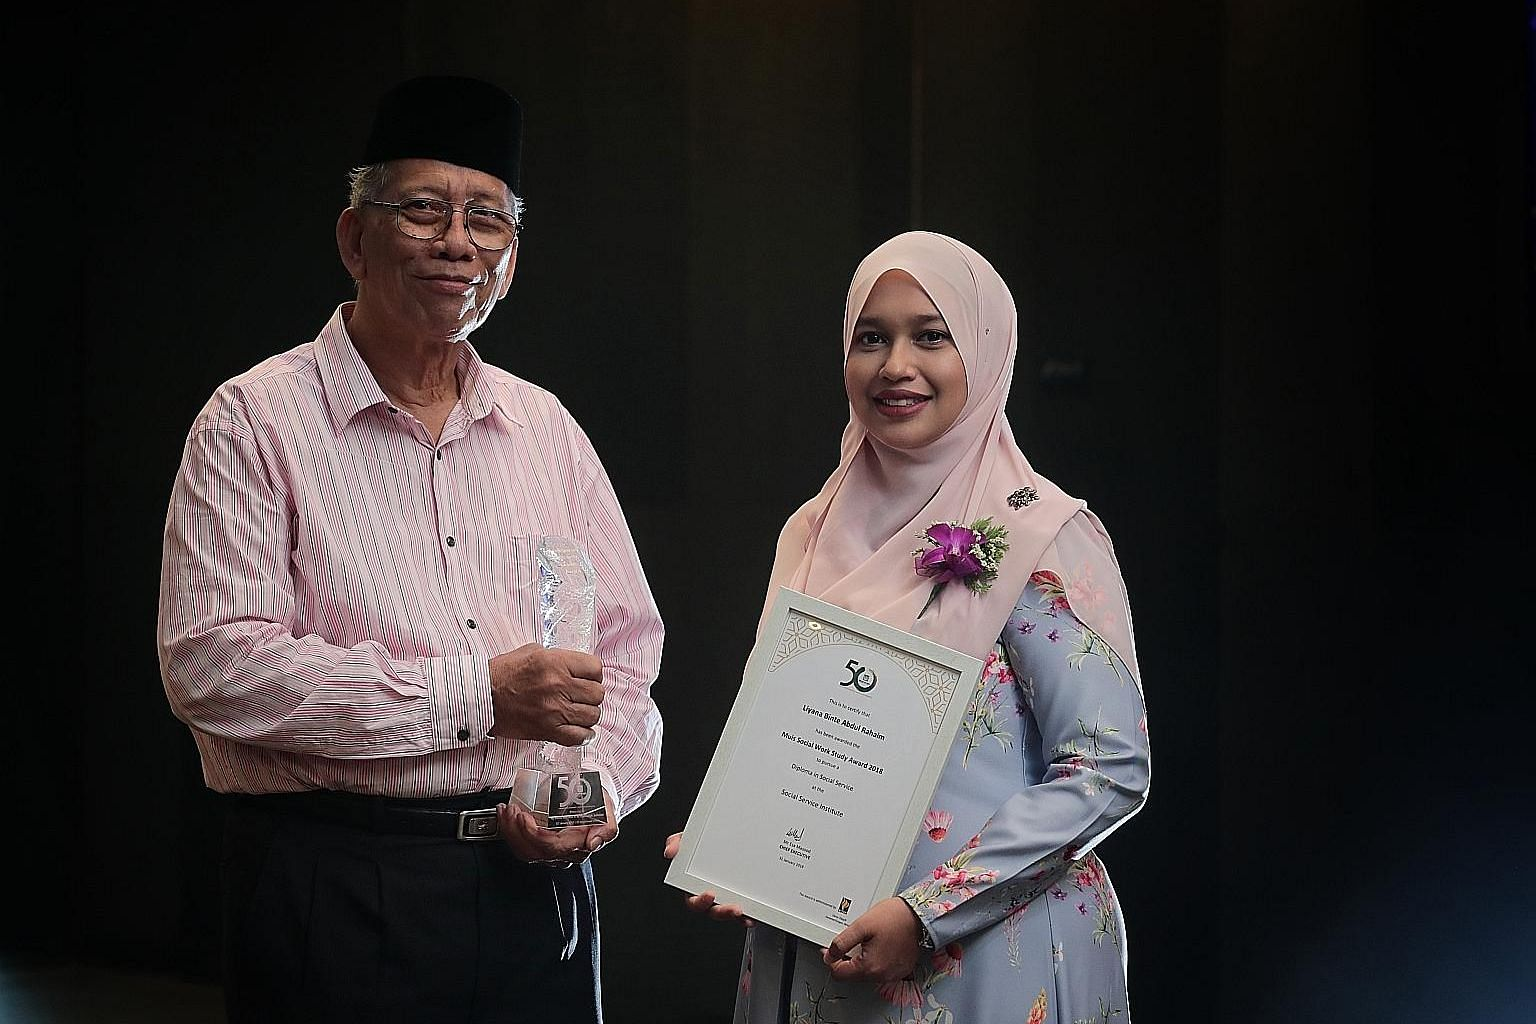 Mr Ma'mun Suheimi received the Muis50 Contemporary Madrasah Leader Award and Ms Liyana Abdul Rahaim was presented with the Muis Social Work Study Award during the Madrasah Teachers Symposium at Suntec Convention Centre yesterday.